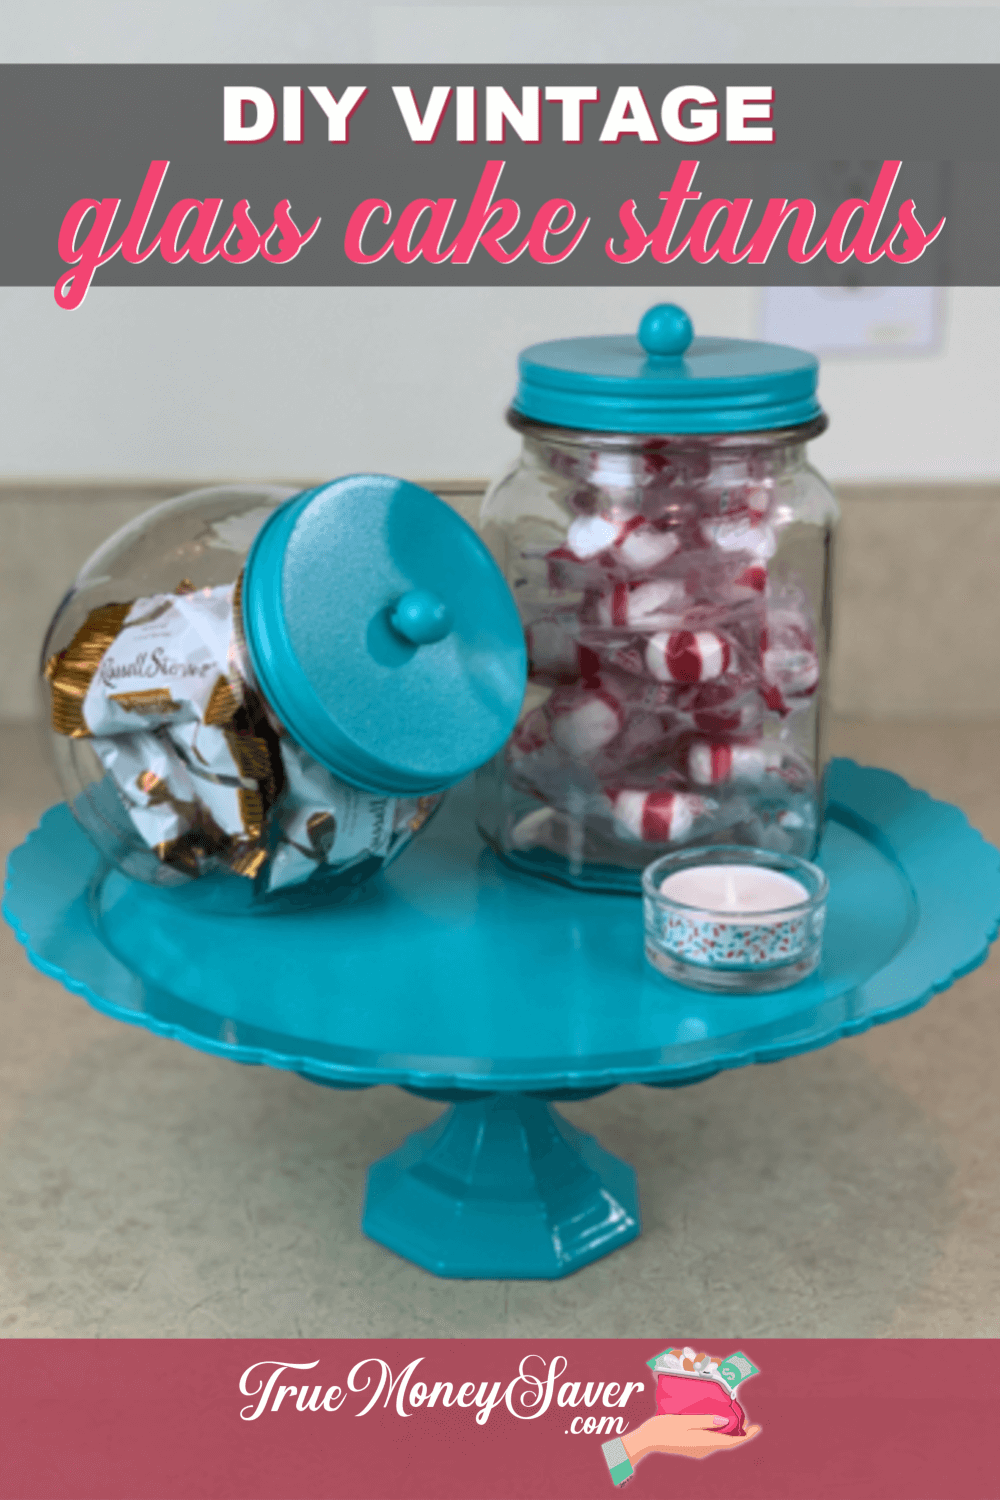 Ready to make some great gifts? Then you need to make this DIY easy cake stand! Make this cheap cake stand from vintage platters and glasses. Everyone will love these Vintage Glass Cake Stands!